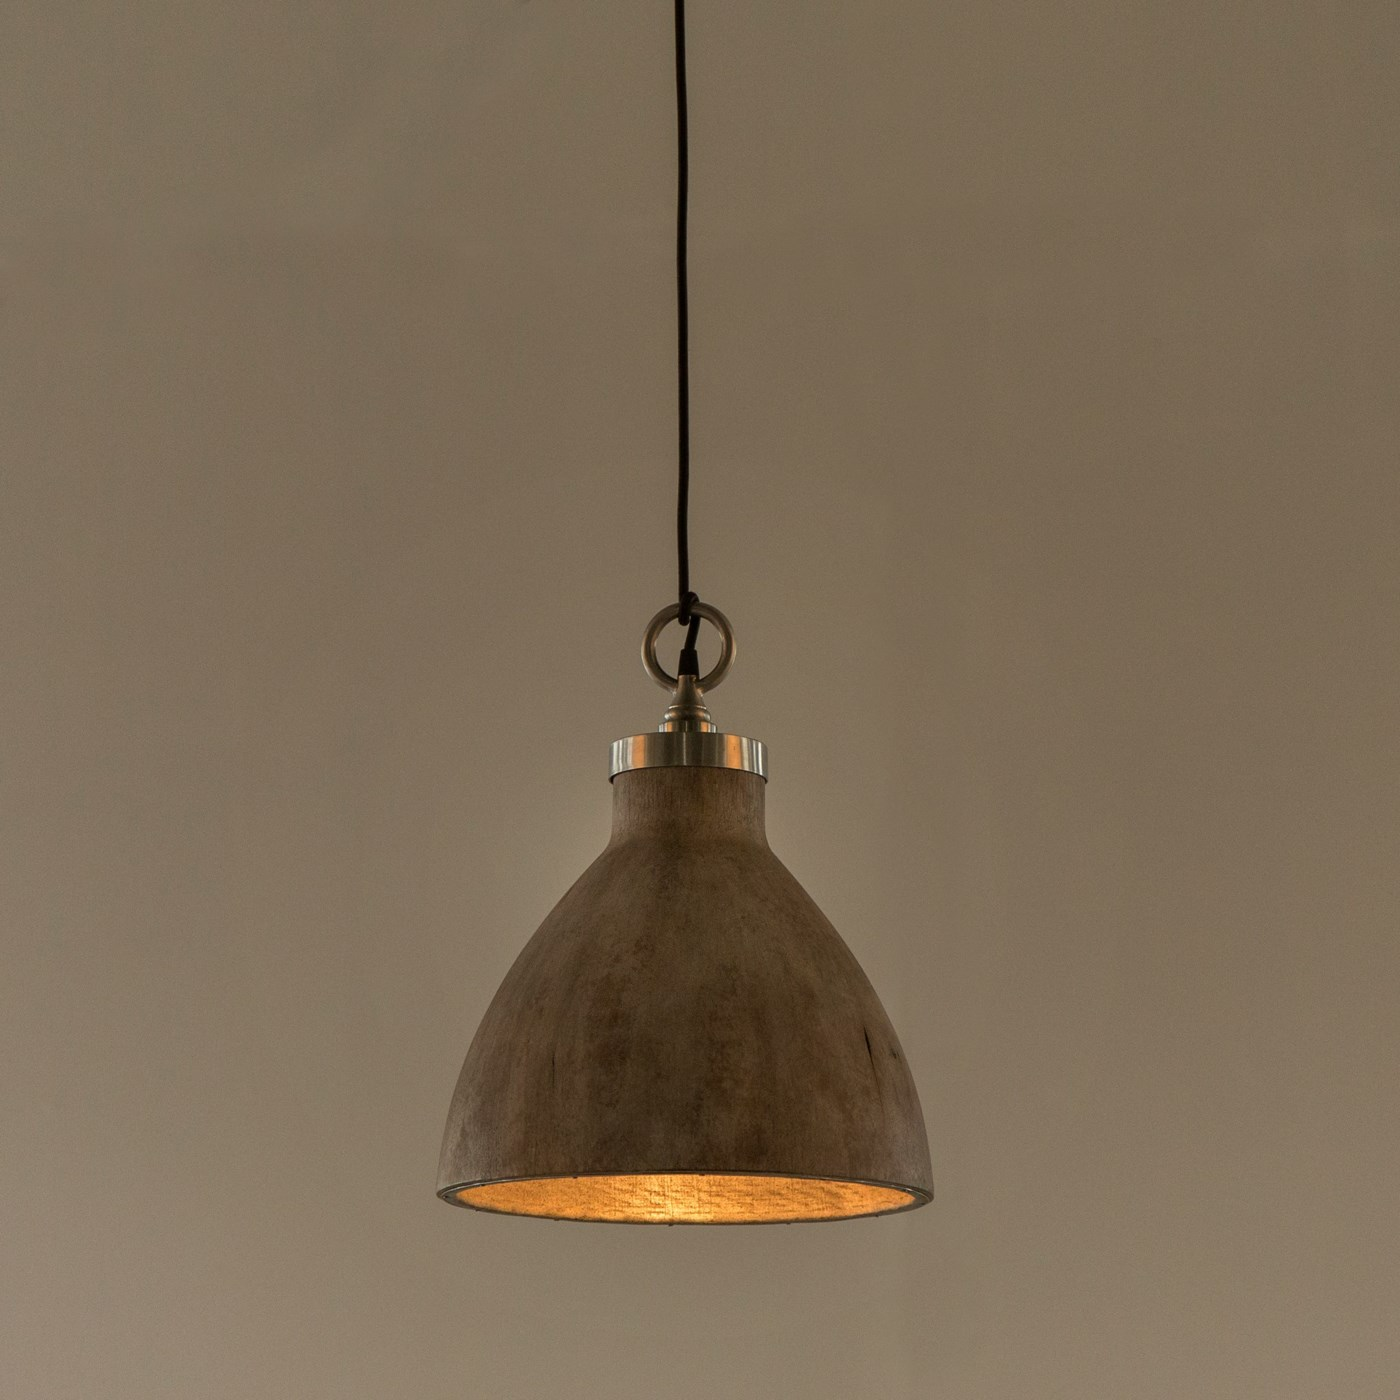 Malibu Pendant - Medium / 120v US